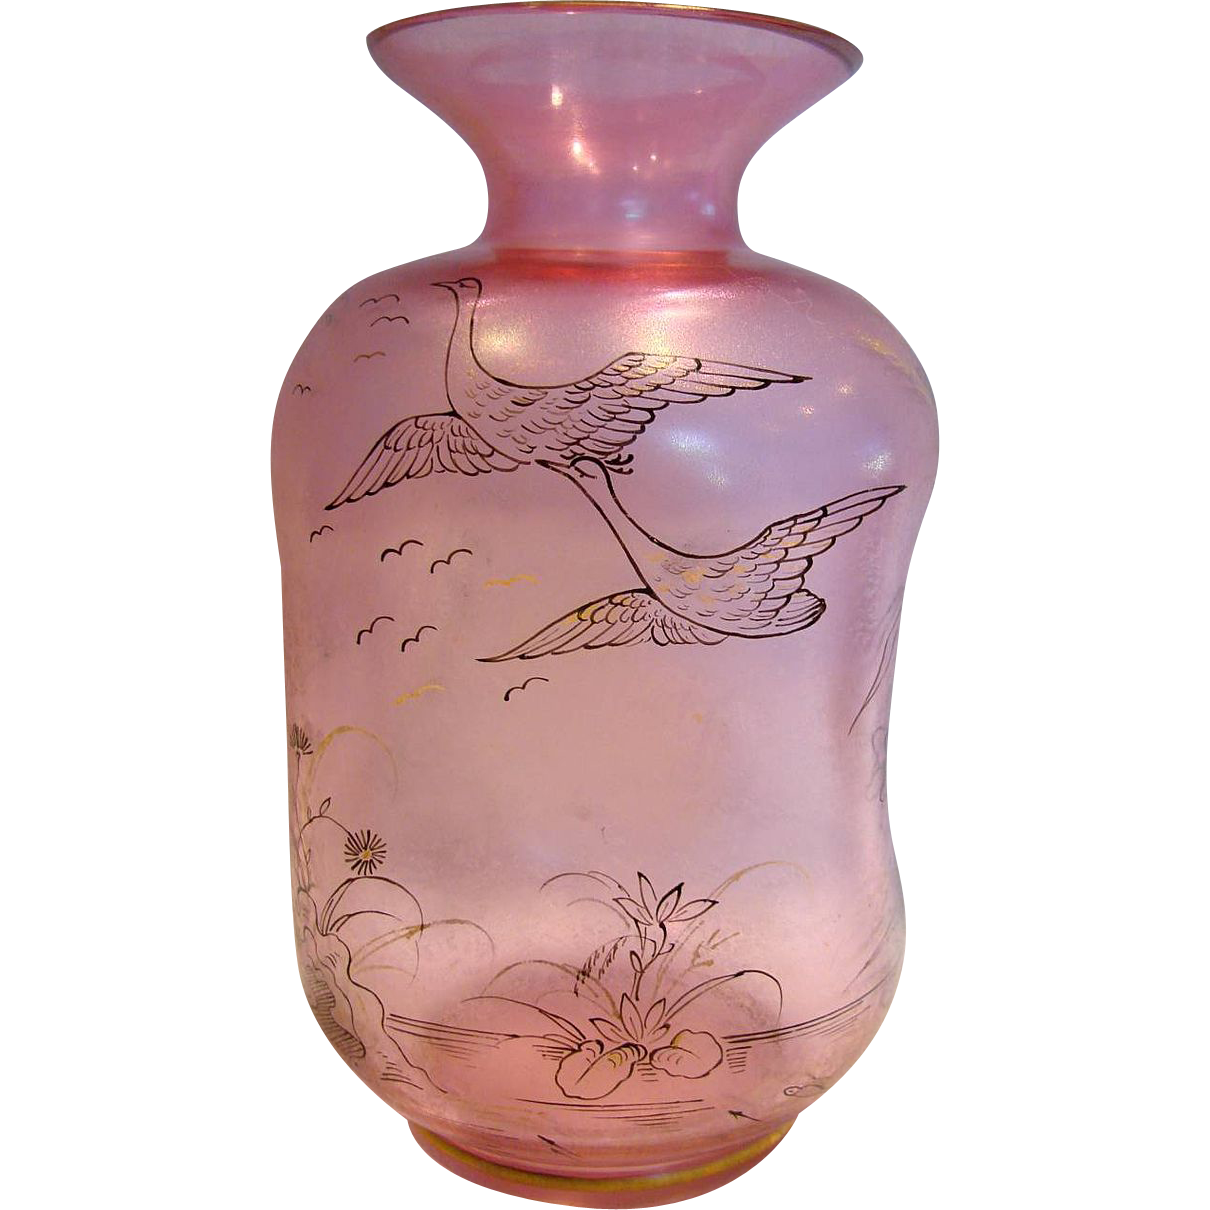 Bohemian Art Glass Vase Cranberry or Pale Ruby w Pen Ink Sketch Drawings of Flying Birds Geese Dragonfly Bee Fish c 1900